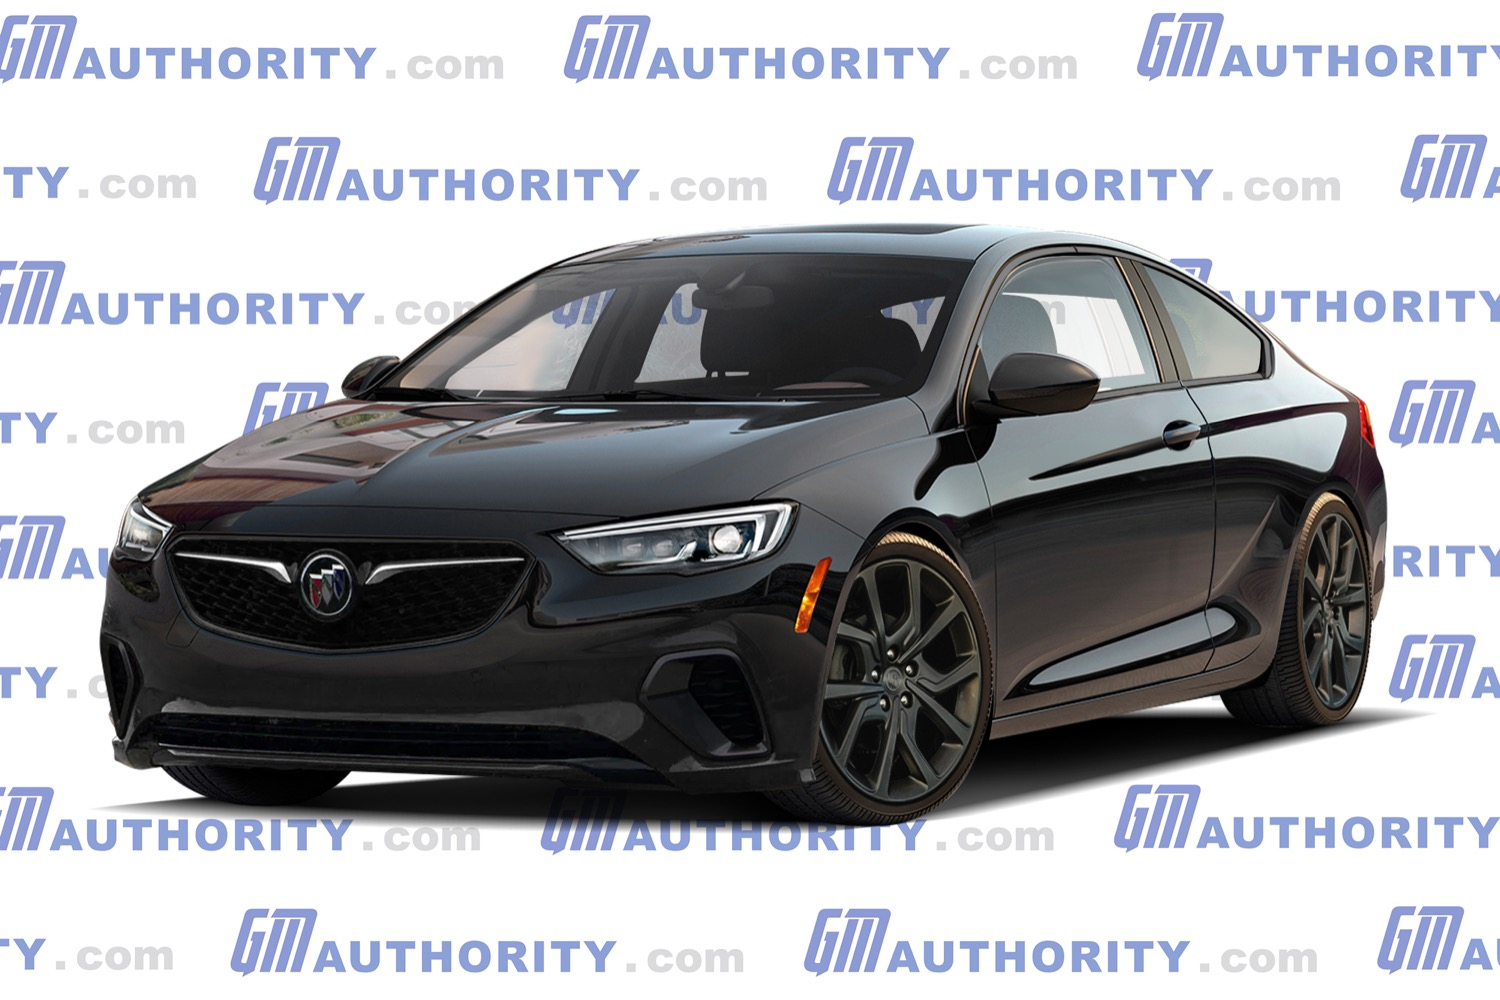 Modern Buick Regal Gnx Rendered | Gm Authority Is There A New 2022 Buick Regal